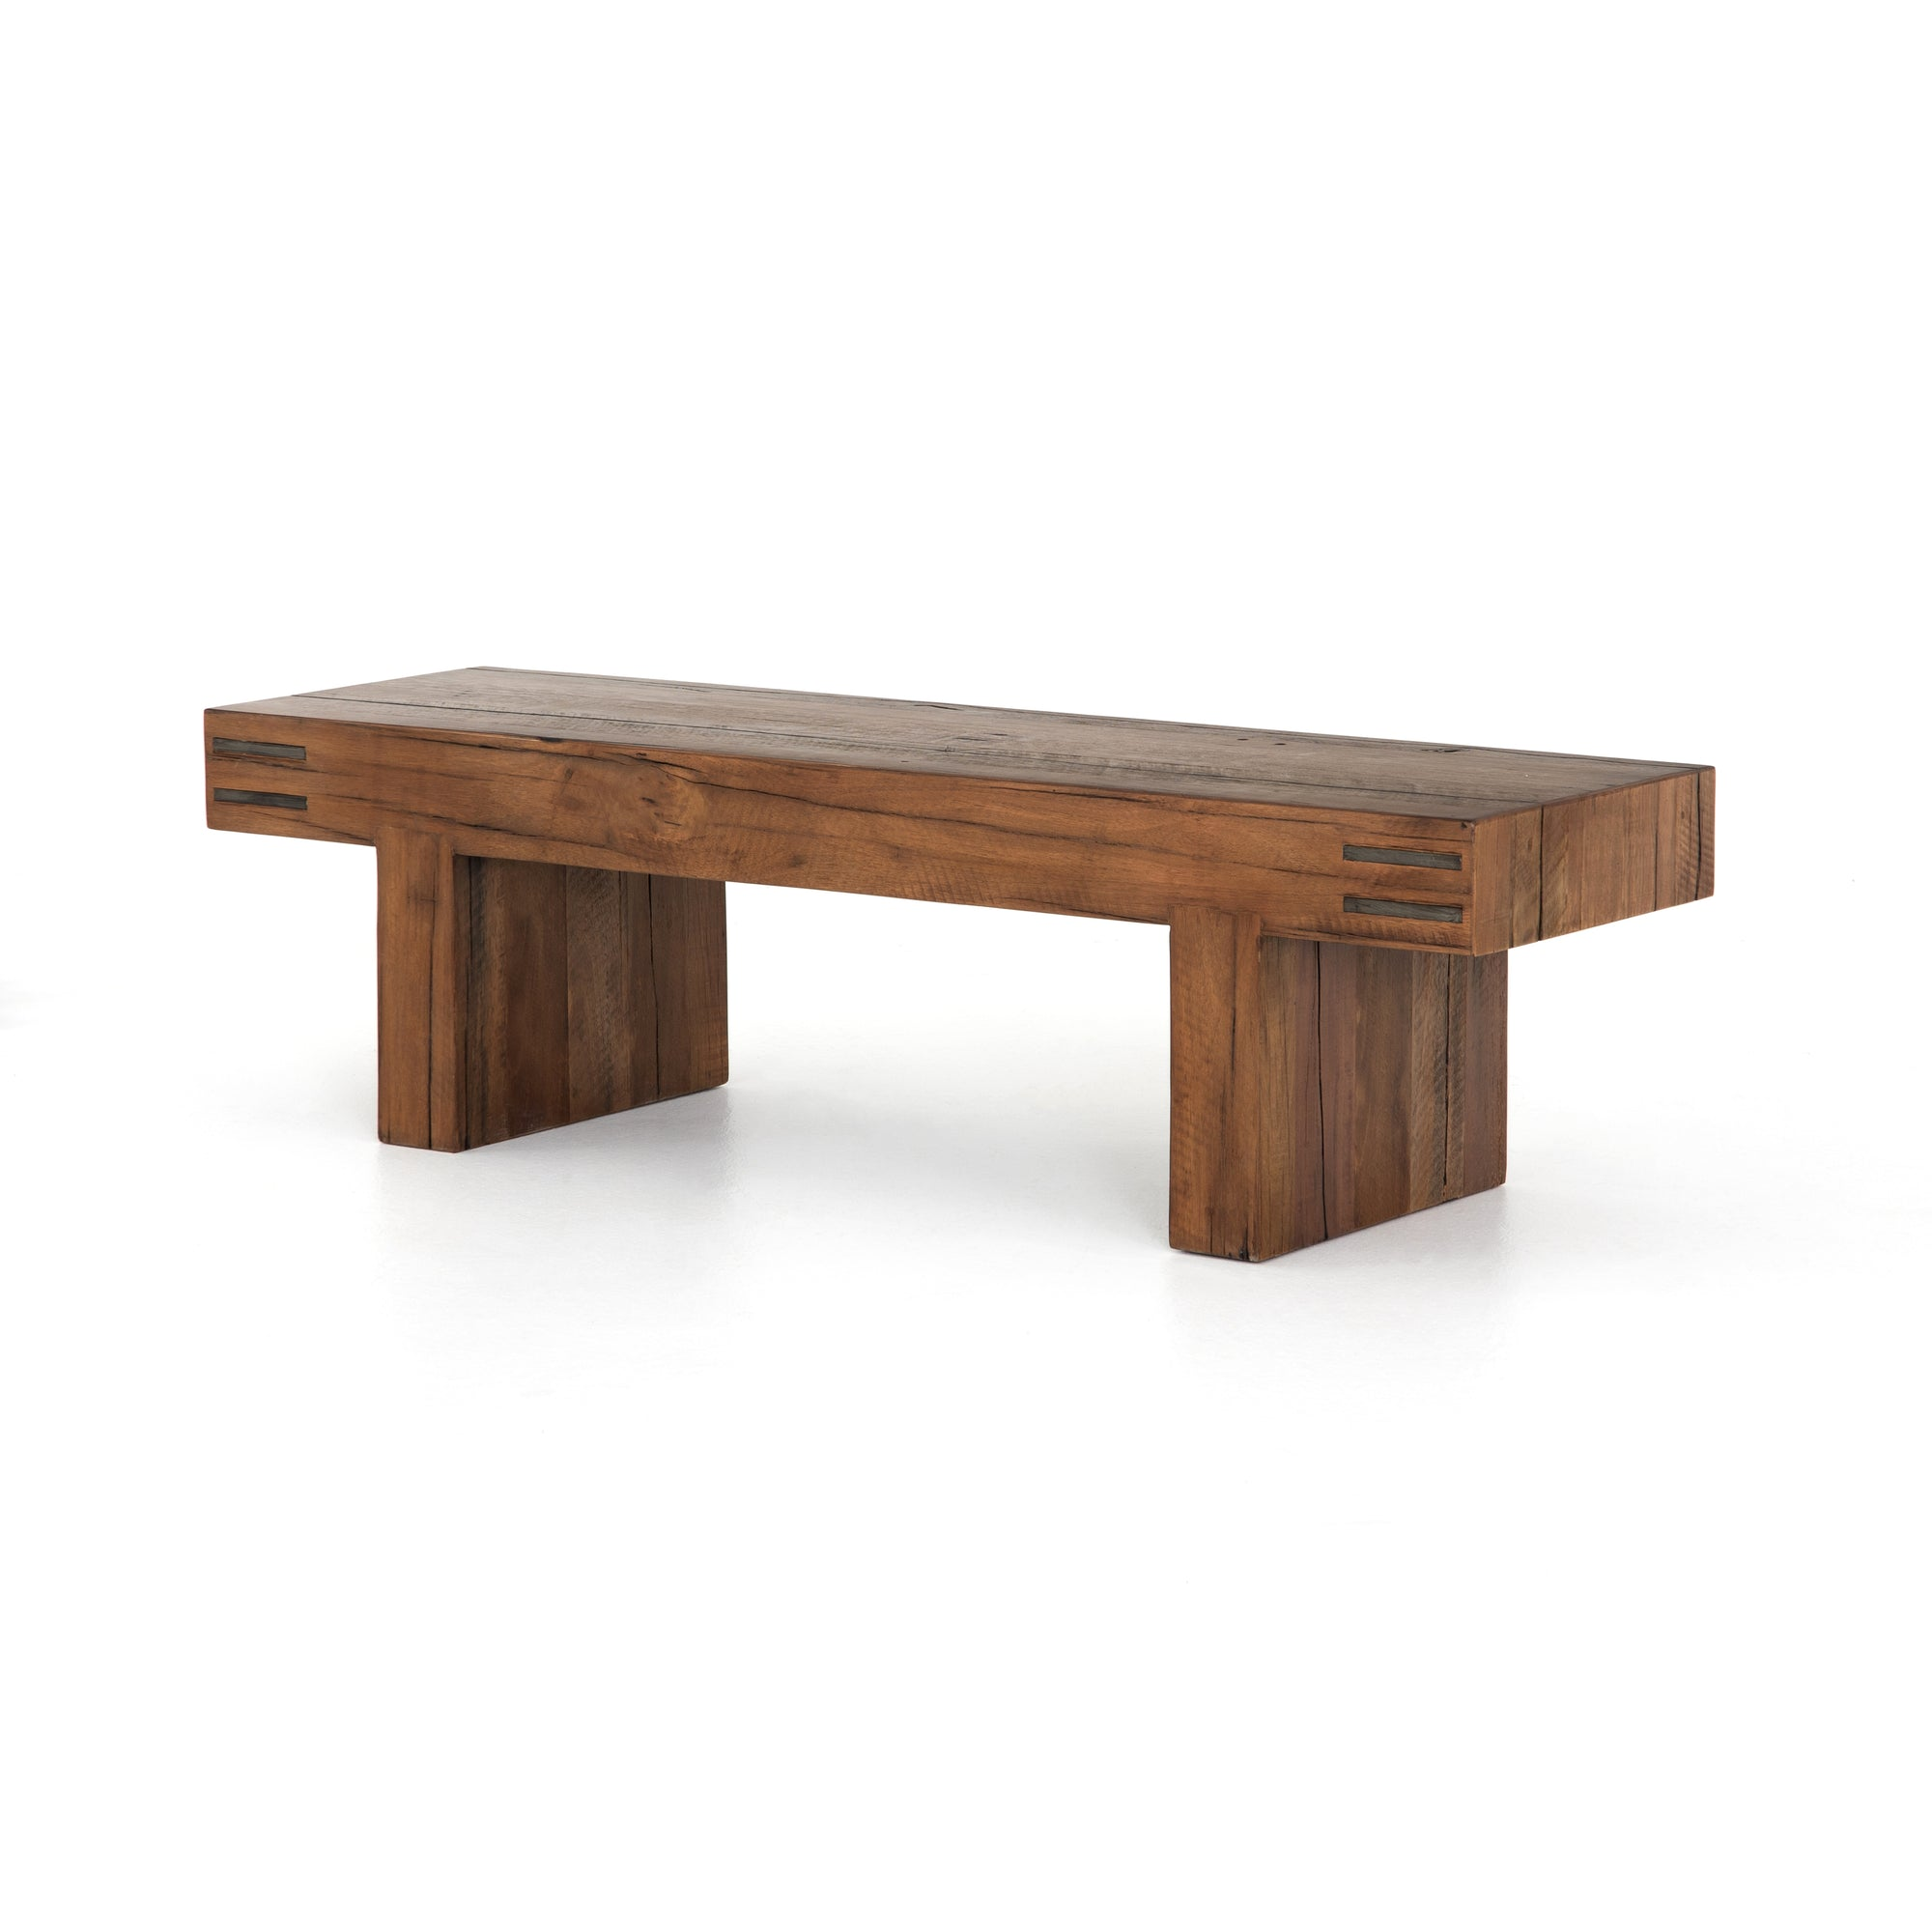 Nolan Accent Bench - Natural Brown